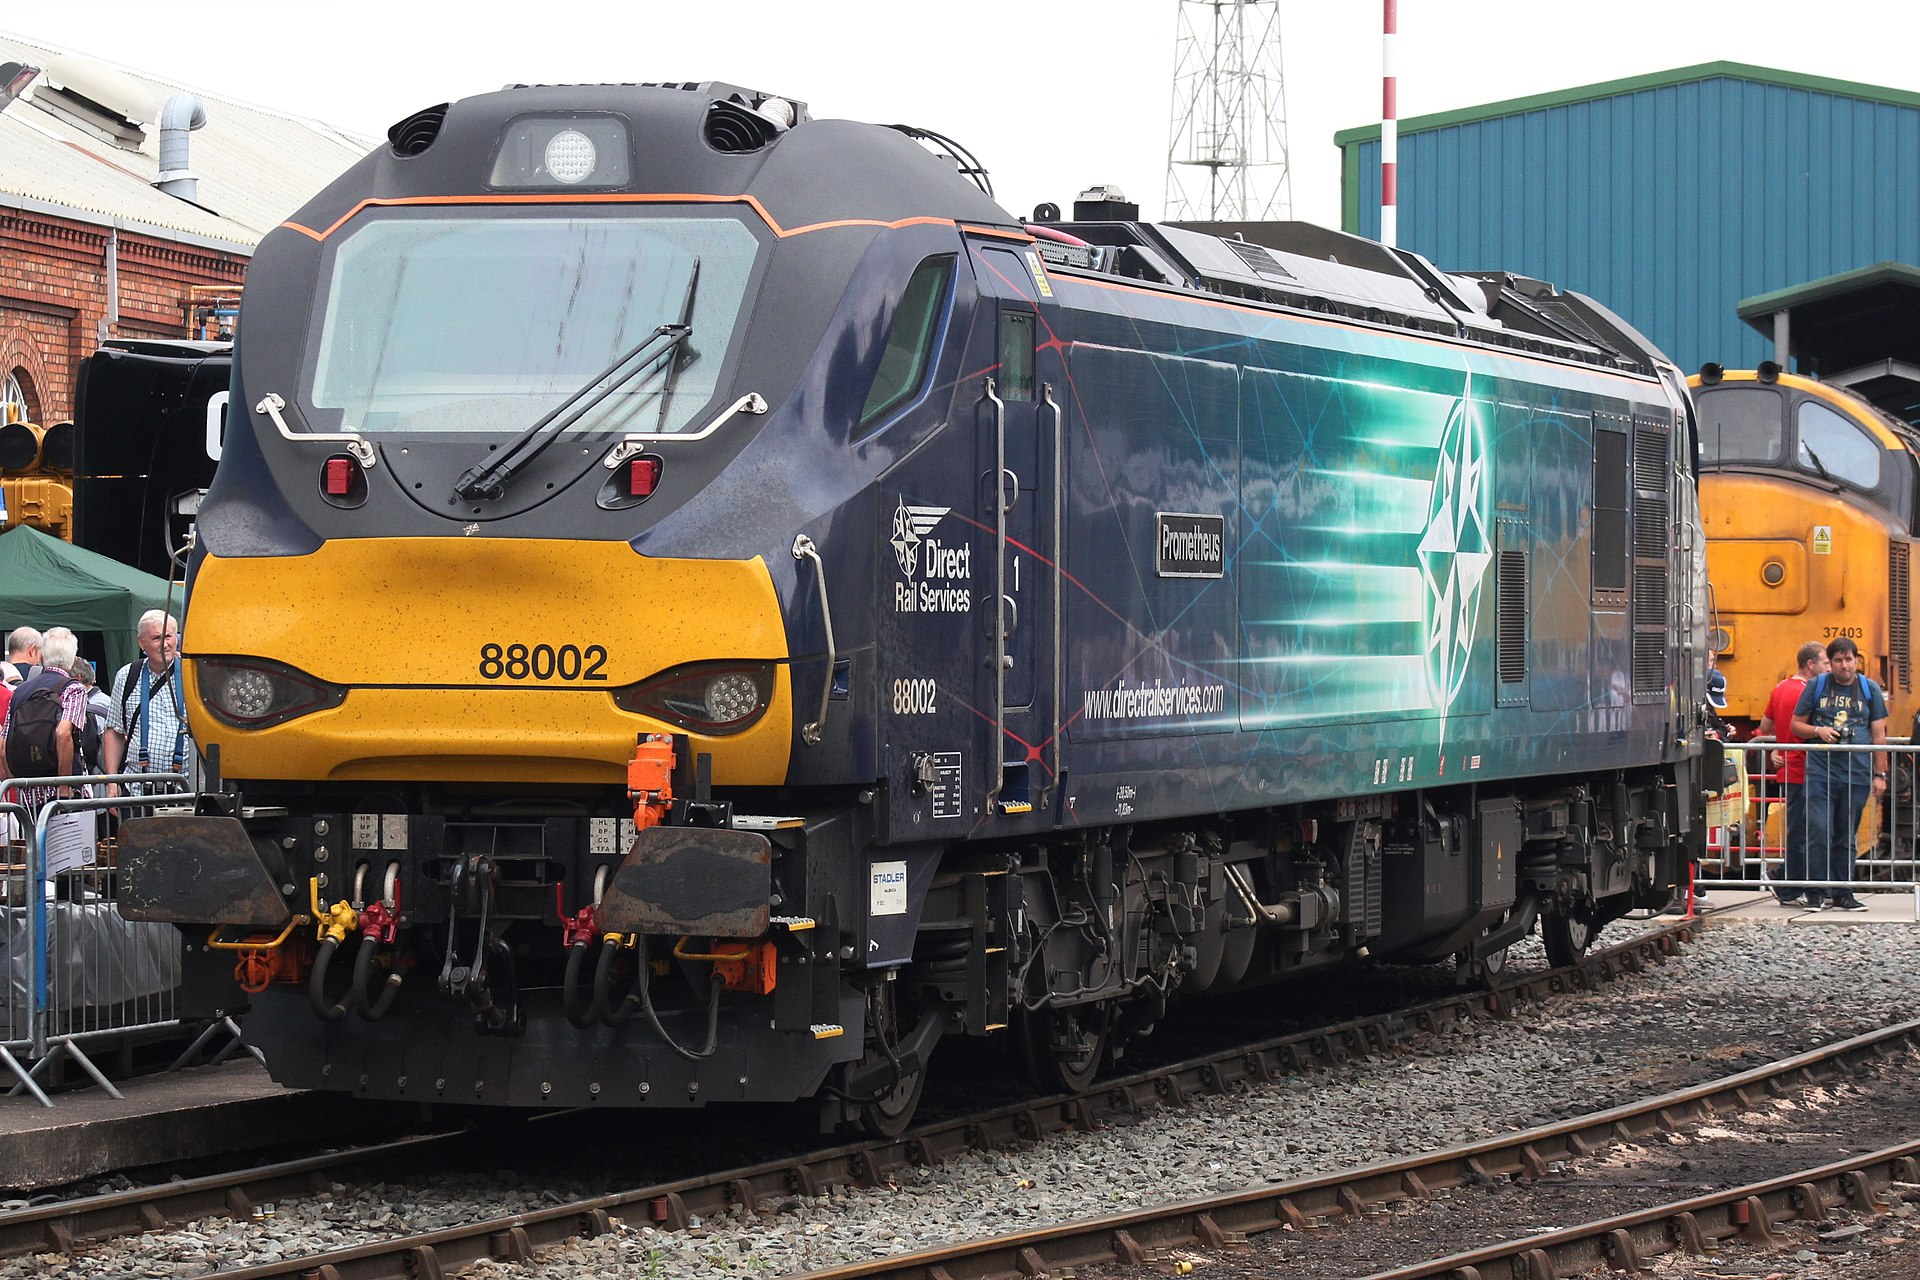 Crewe DRS open day 2018 - 88002 (37403).JPG